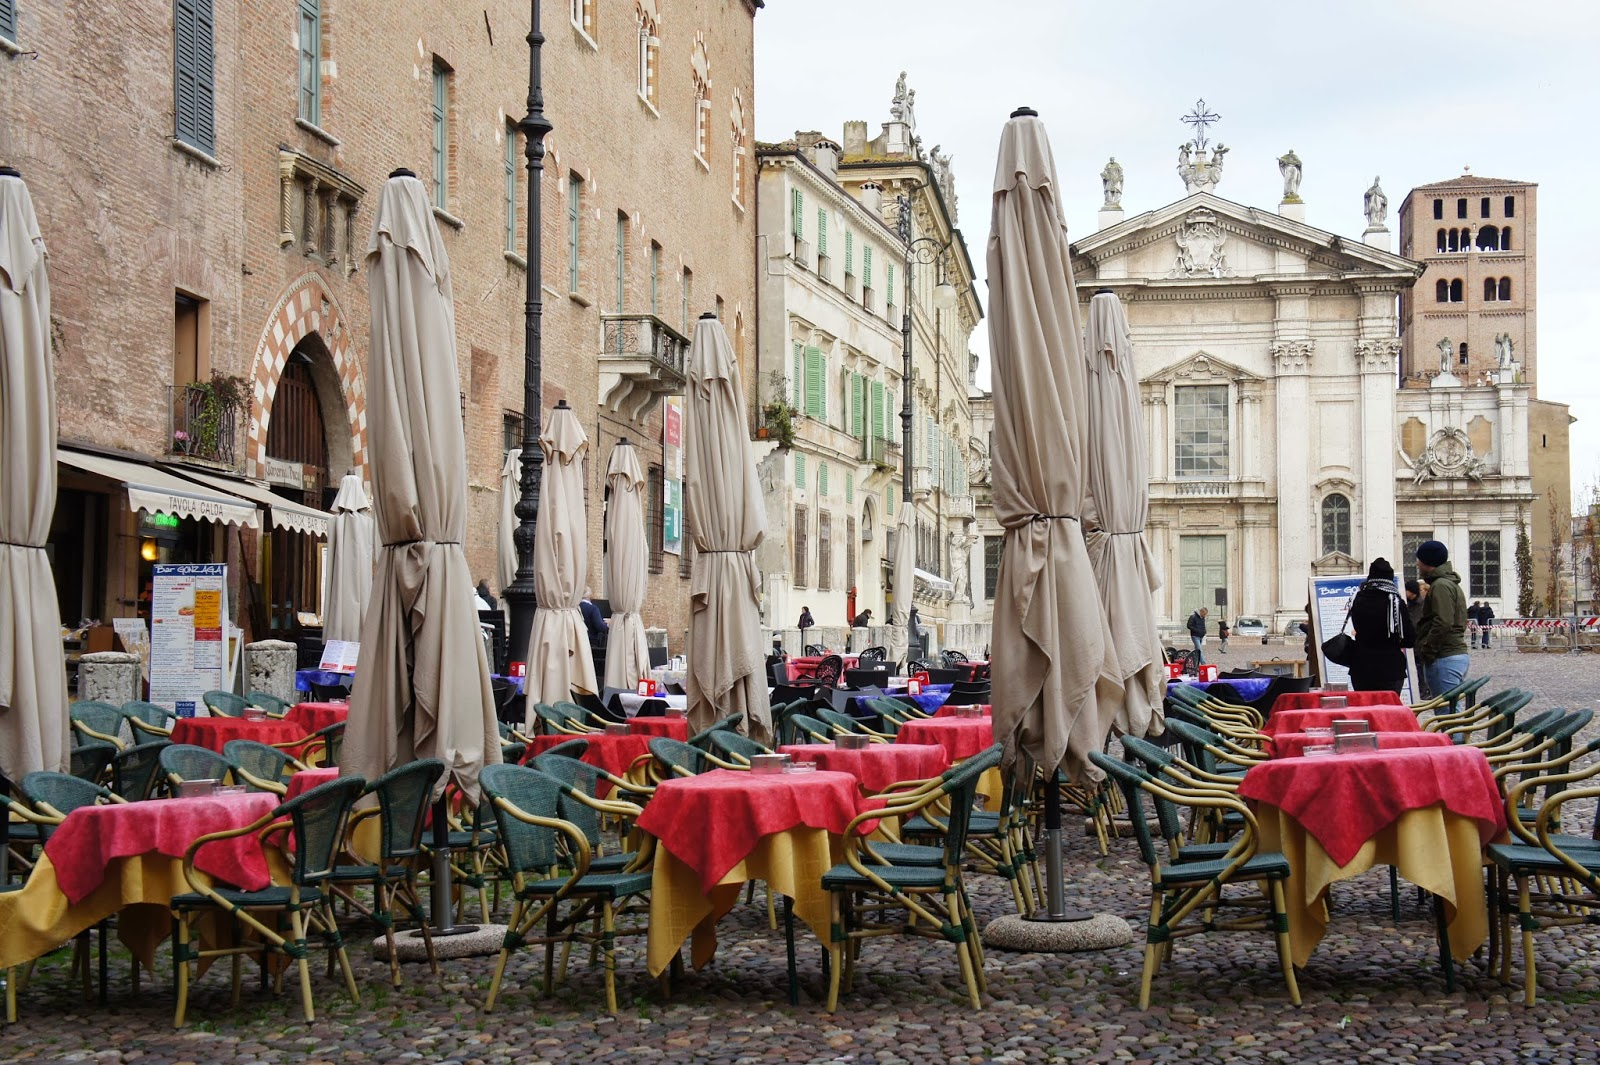 the stroke blog: a hidden gem in italy: you say mantua, i say mantova